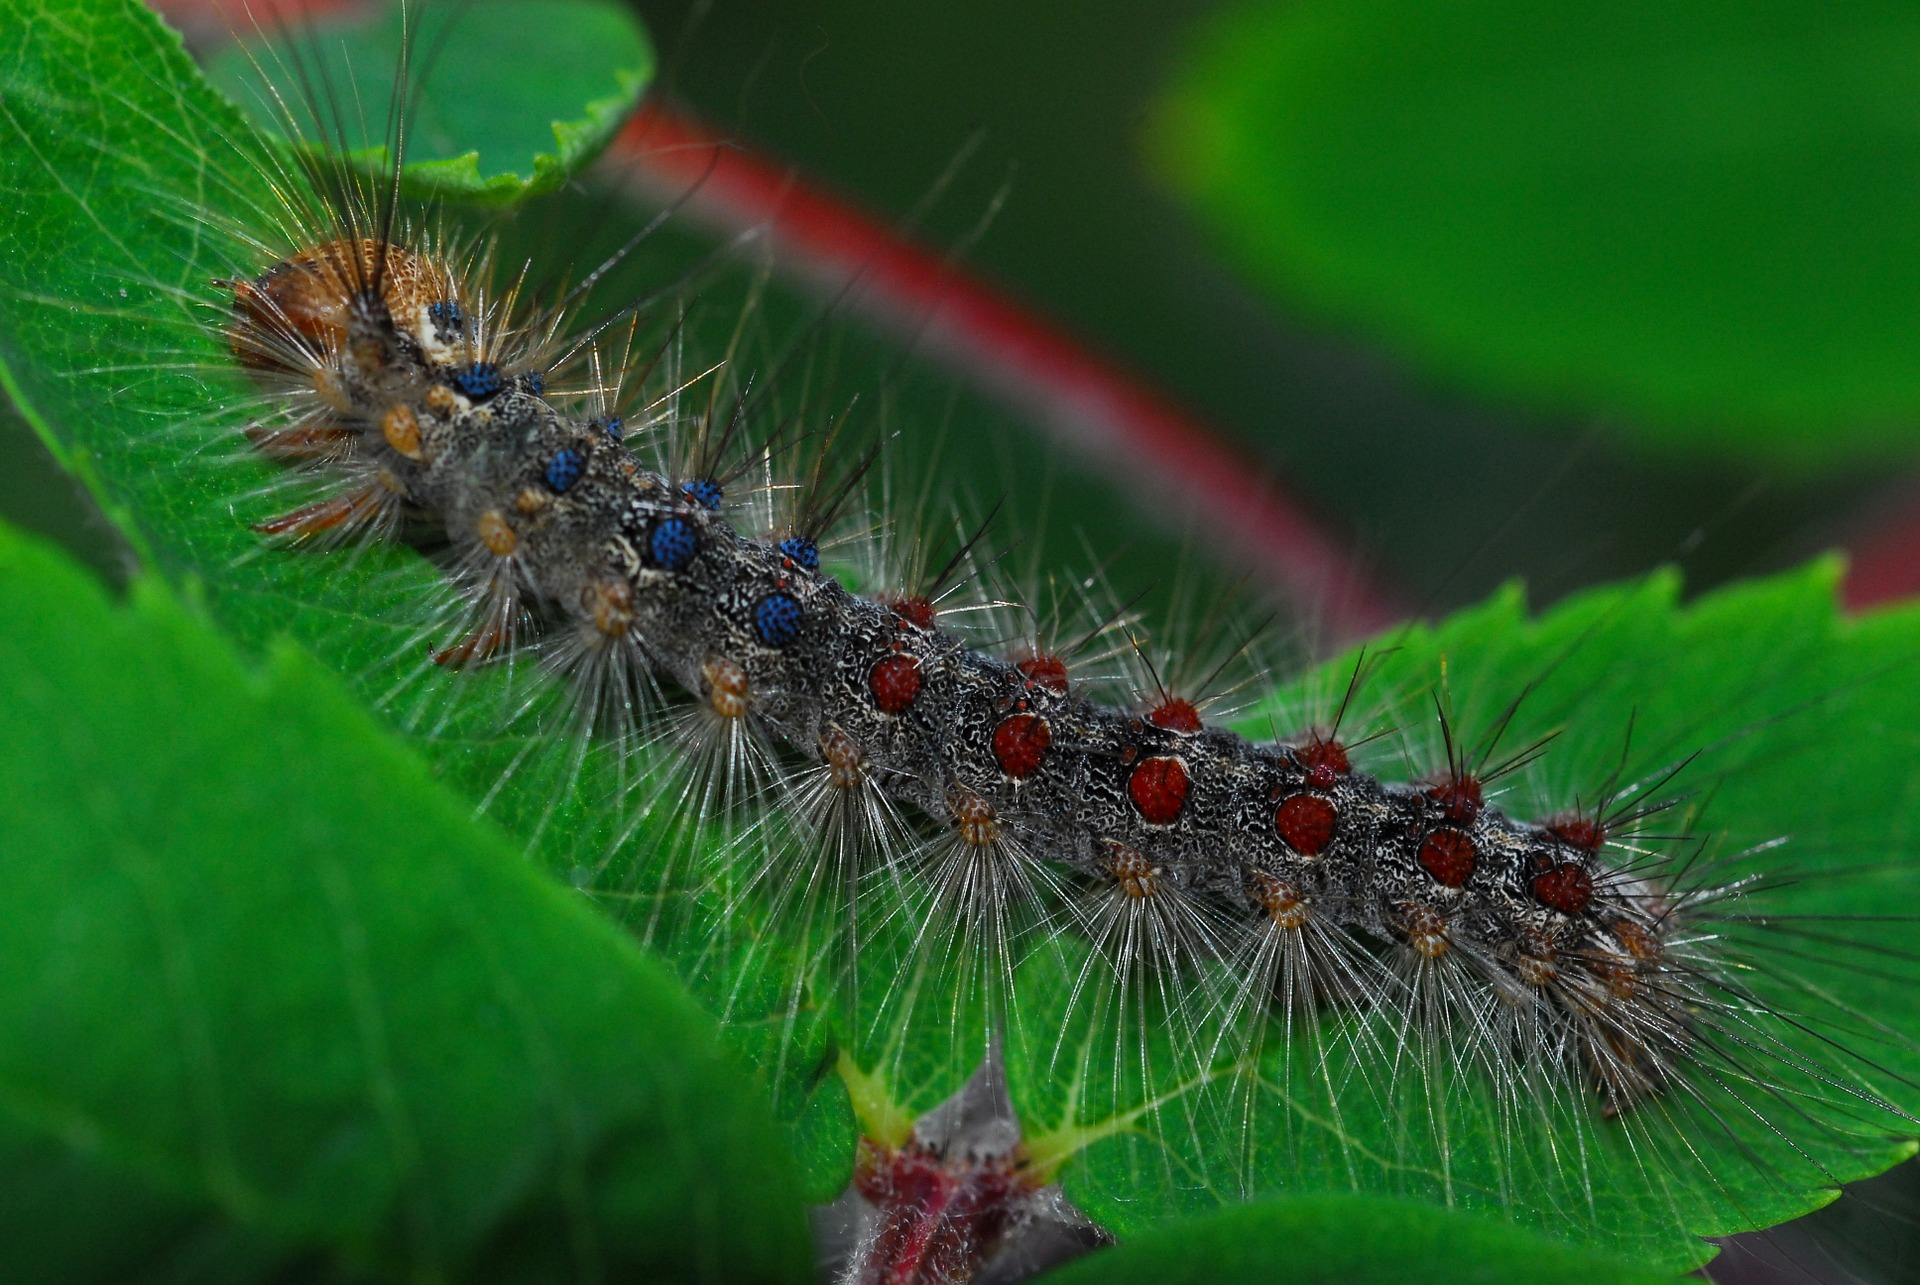 Gypsy Moth Most Wanted Pests Threatening Your Lawn Part 2